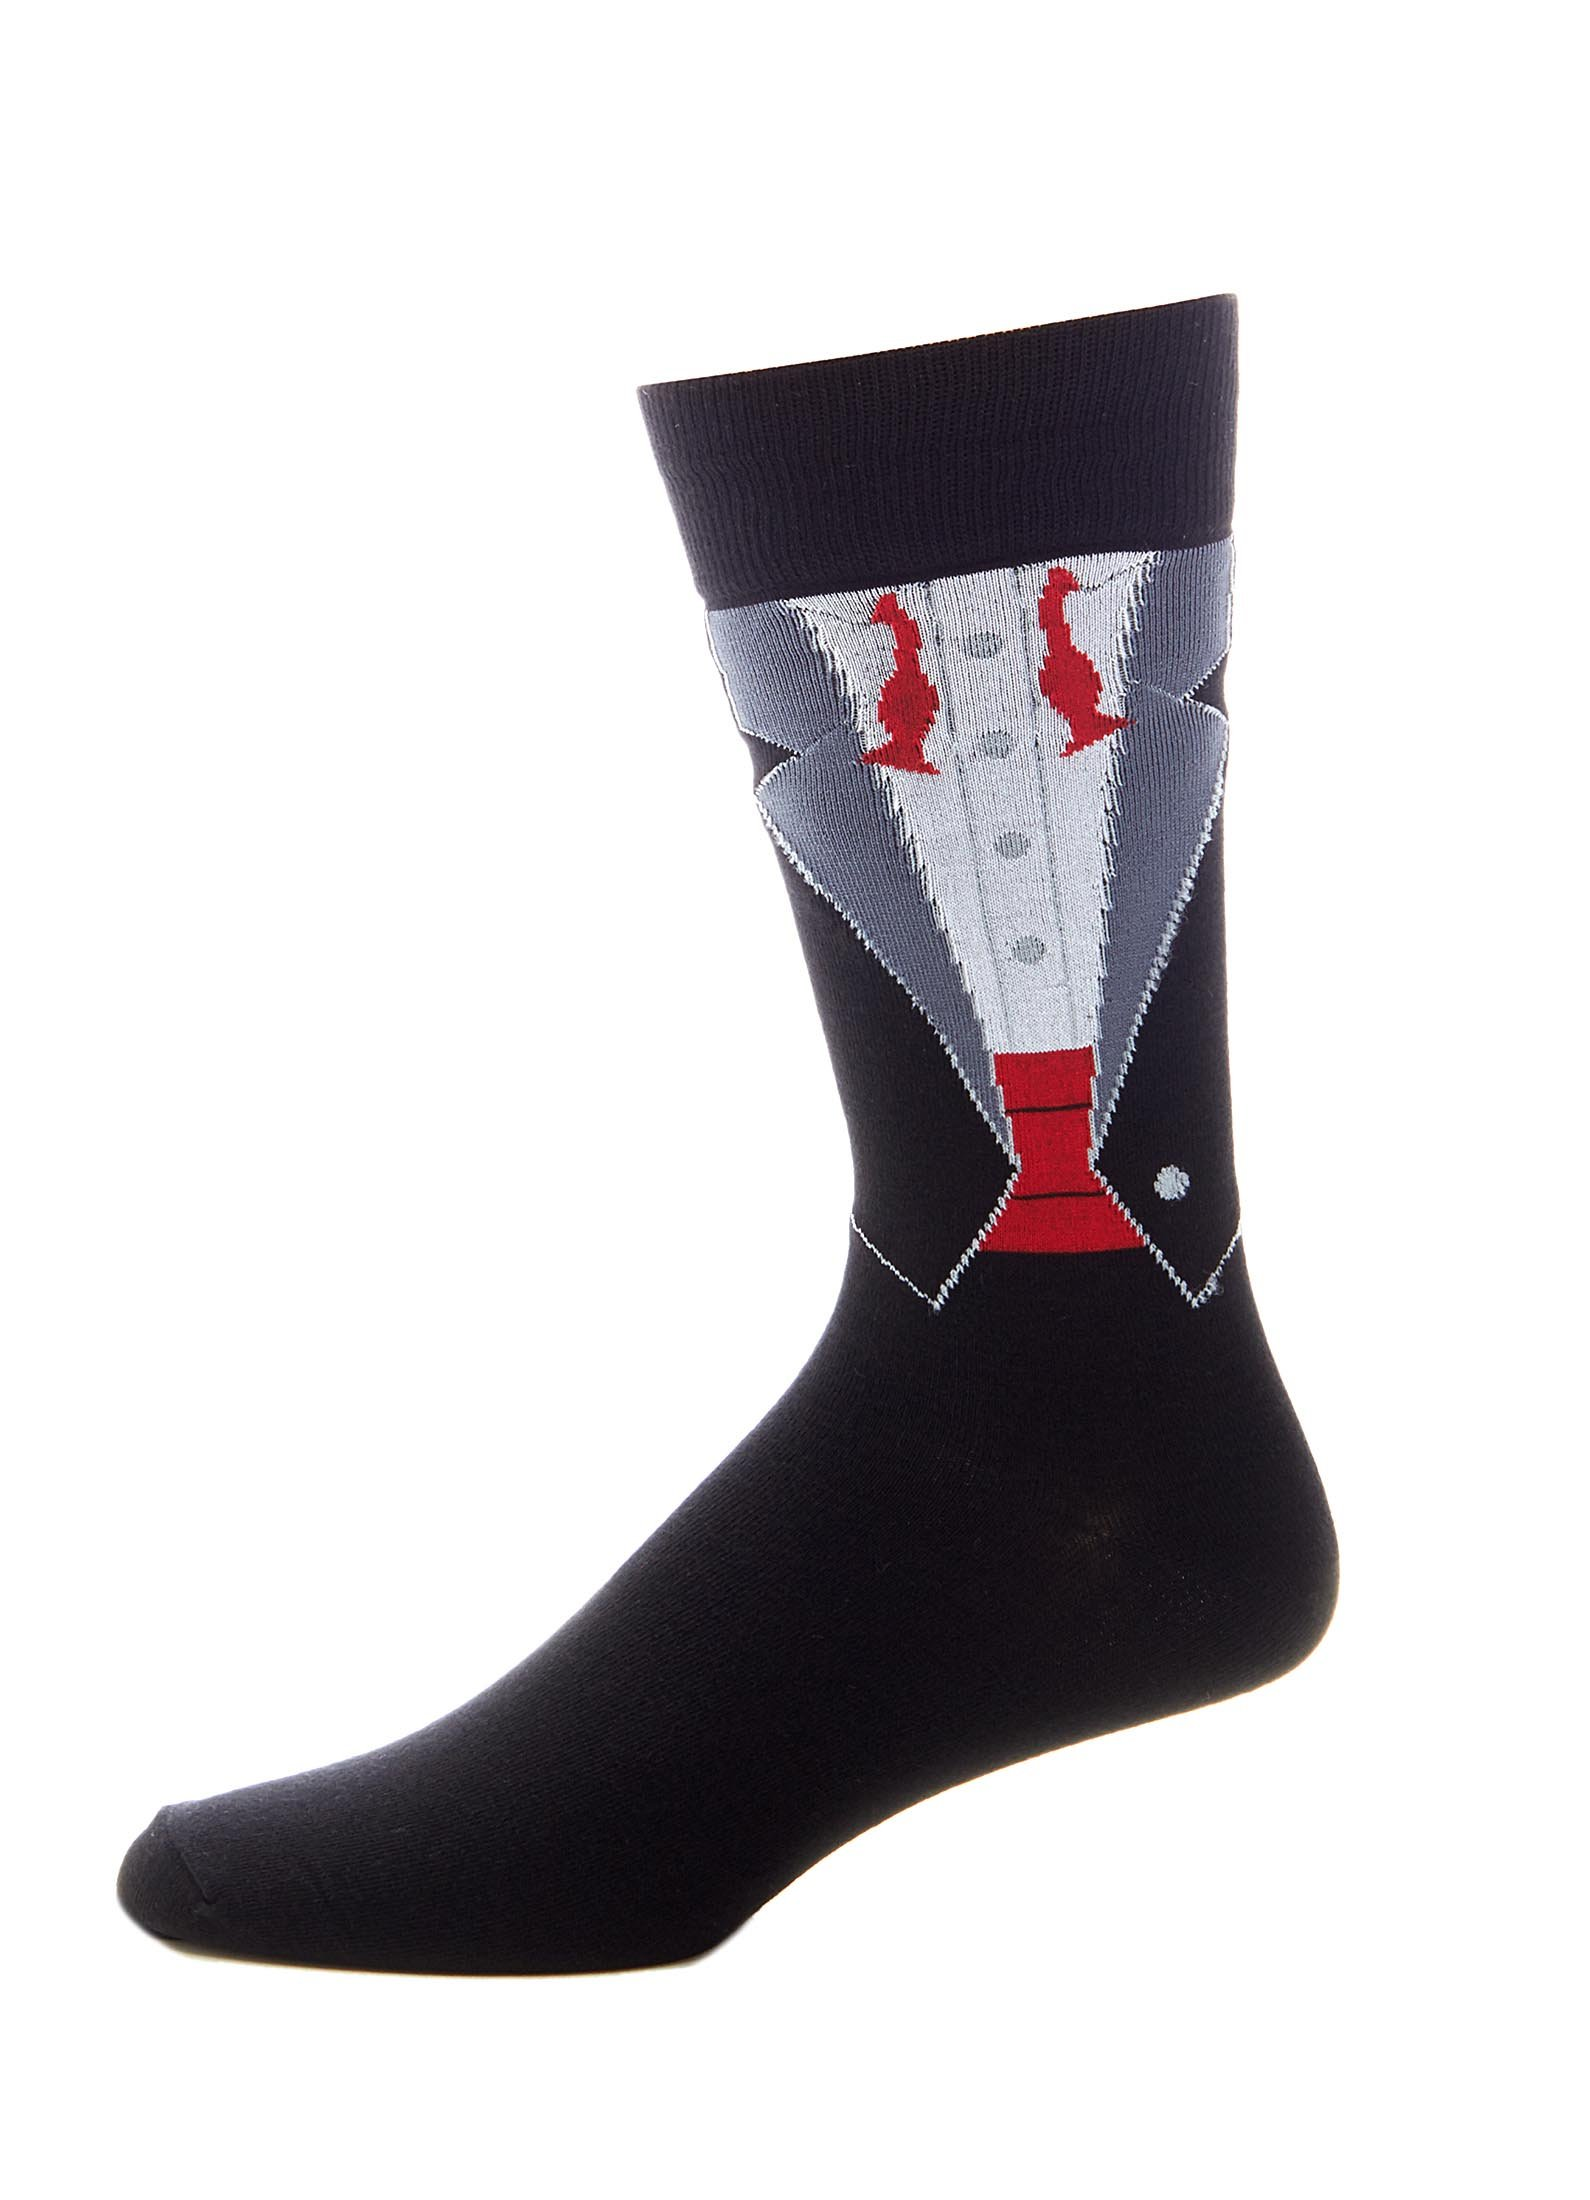 Fine Fit Man Cave Trouser Socks (Groom)